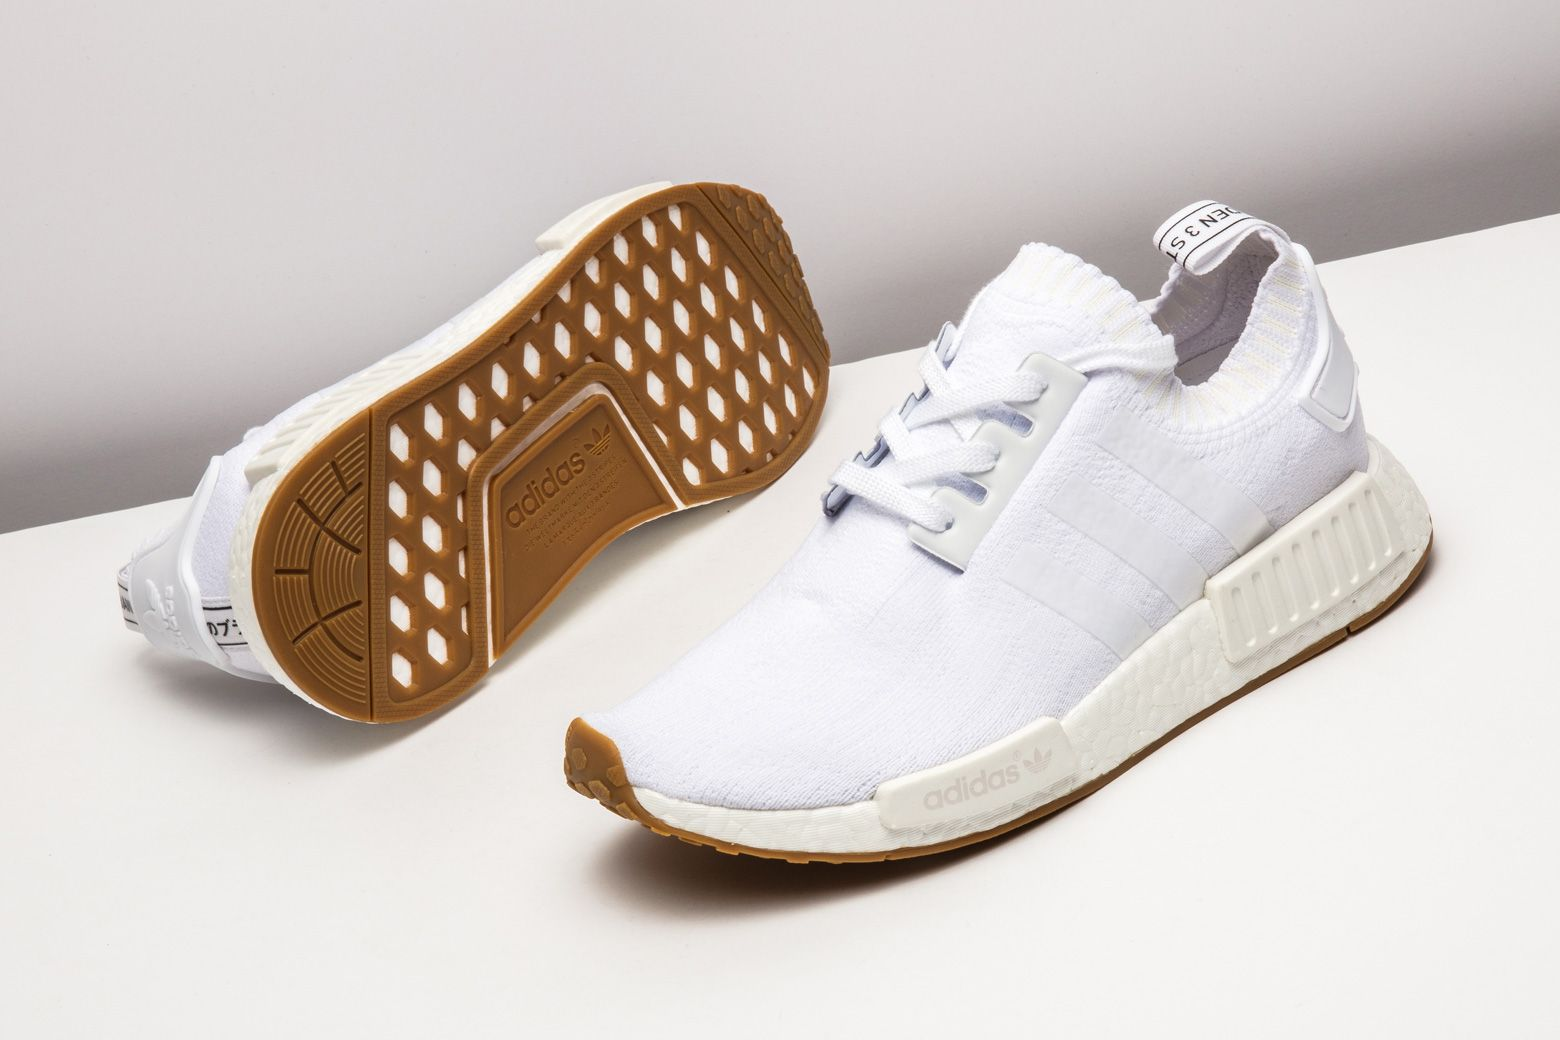 adidas nmd sneakers white gum adidas superstar shoes womens